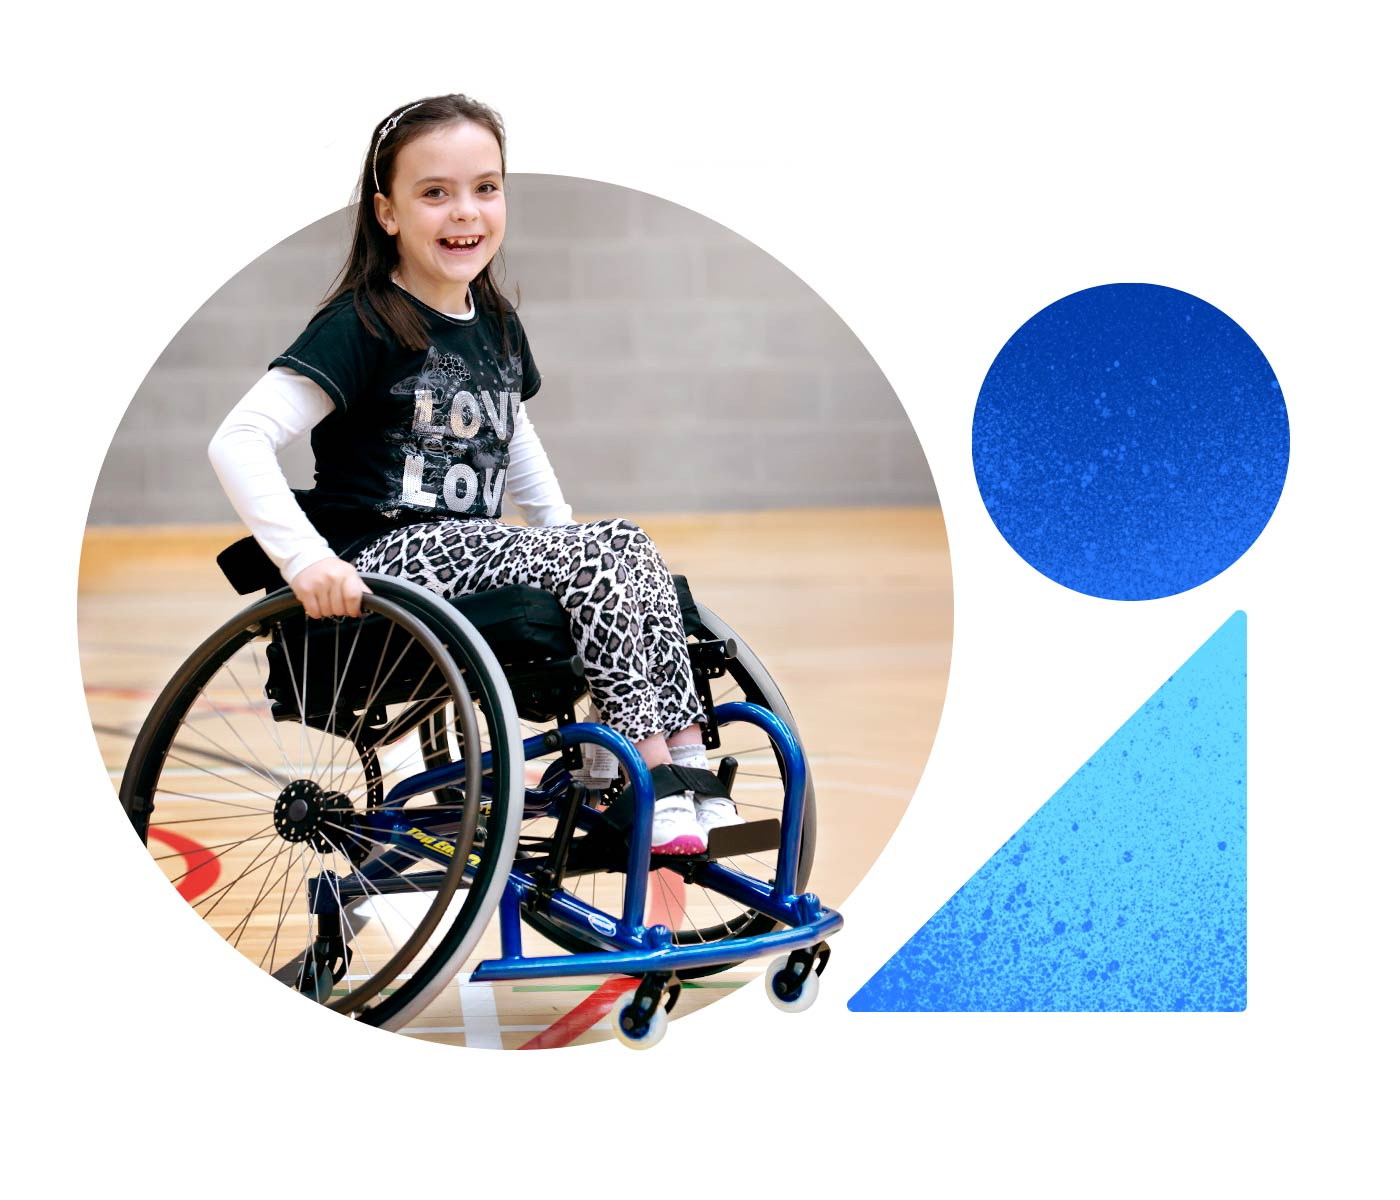 A young girl smiles as she moves her wheelchair across a basketball court